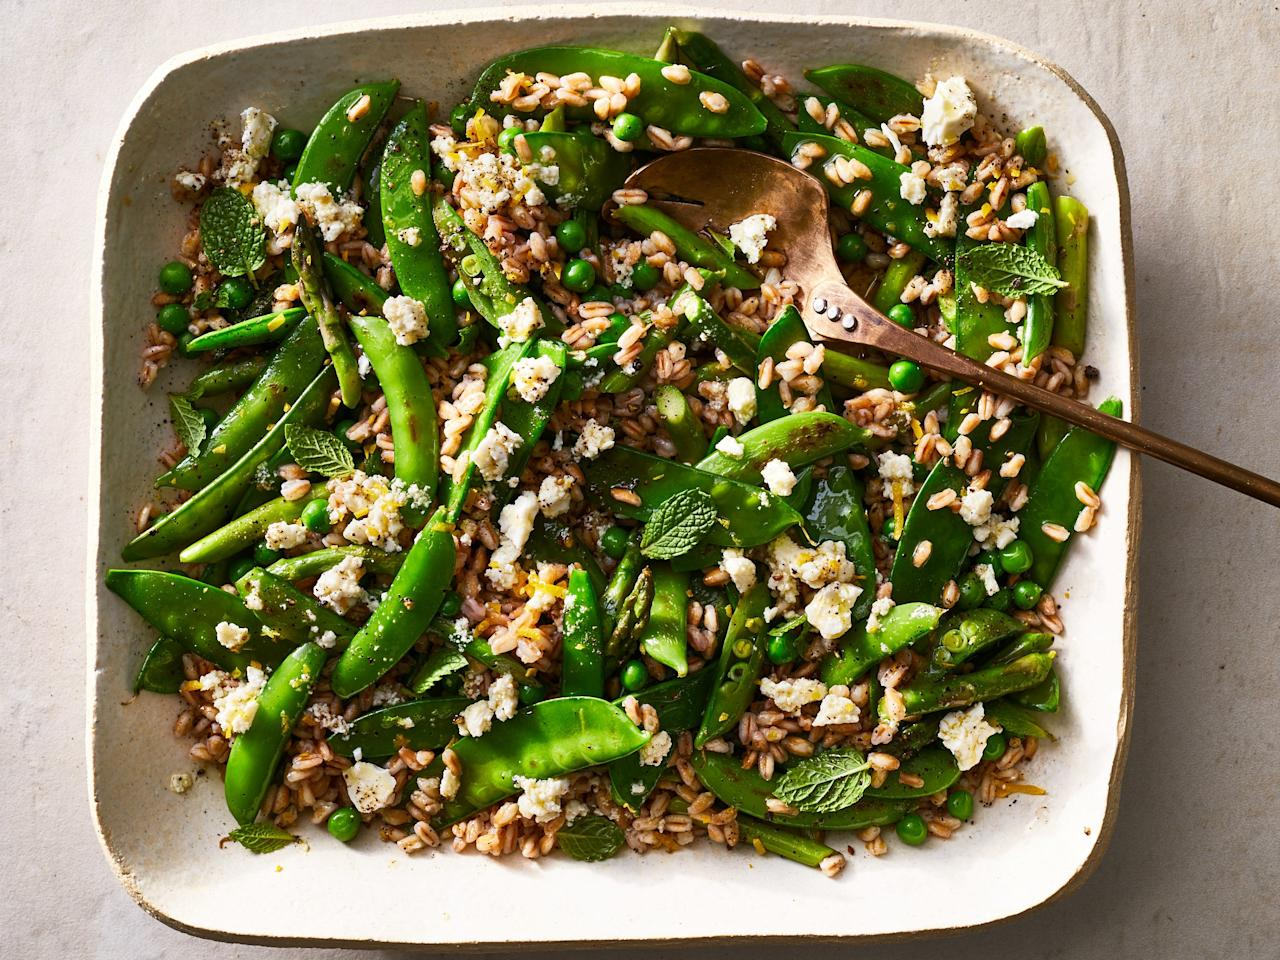 "<p>This salad brings fresh flavors to the plate with confidence and swagger. Barely blanched peas mingle with pan-fried sugar snaps, snow peas, and another of Hetty McKinnon's favorite spring ingredients, asparagus, which are cooked on high heat until just tender yet still crisp with the slightest hint of charring to add smokiness.</p><p><a href=""https://www.foodandwine.com/recipes/triple-pea-and-asparagus-salad-feta-mint-dressing"">GO TO RECIPE</a></p>"